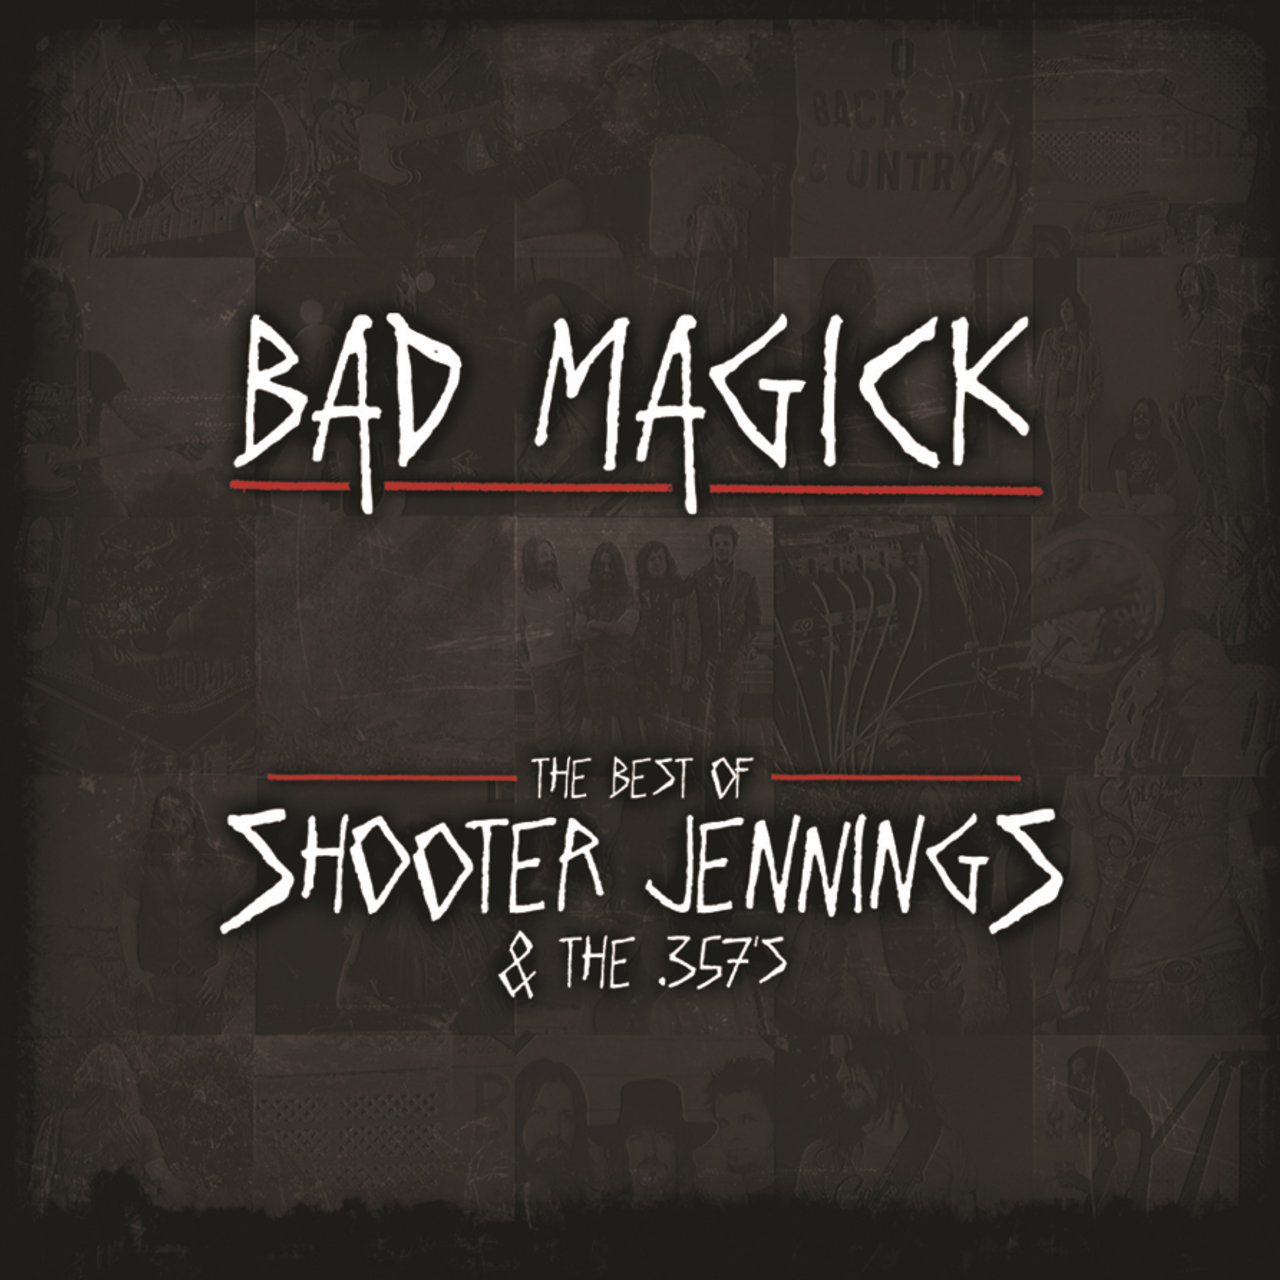 Bad Magick - The Best Of Shooter Jennings & The .357's